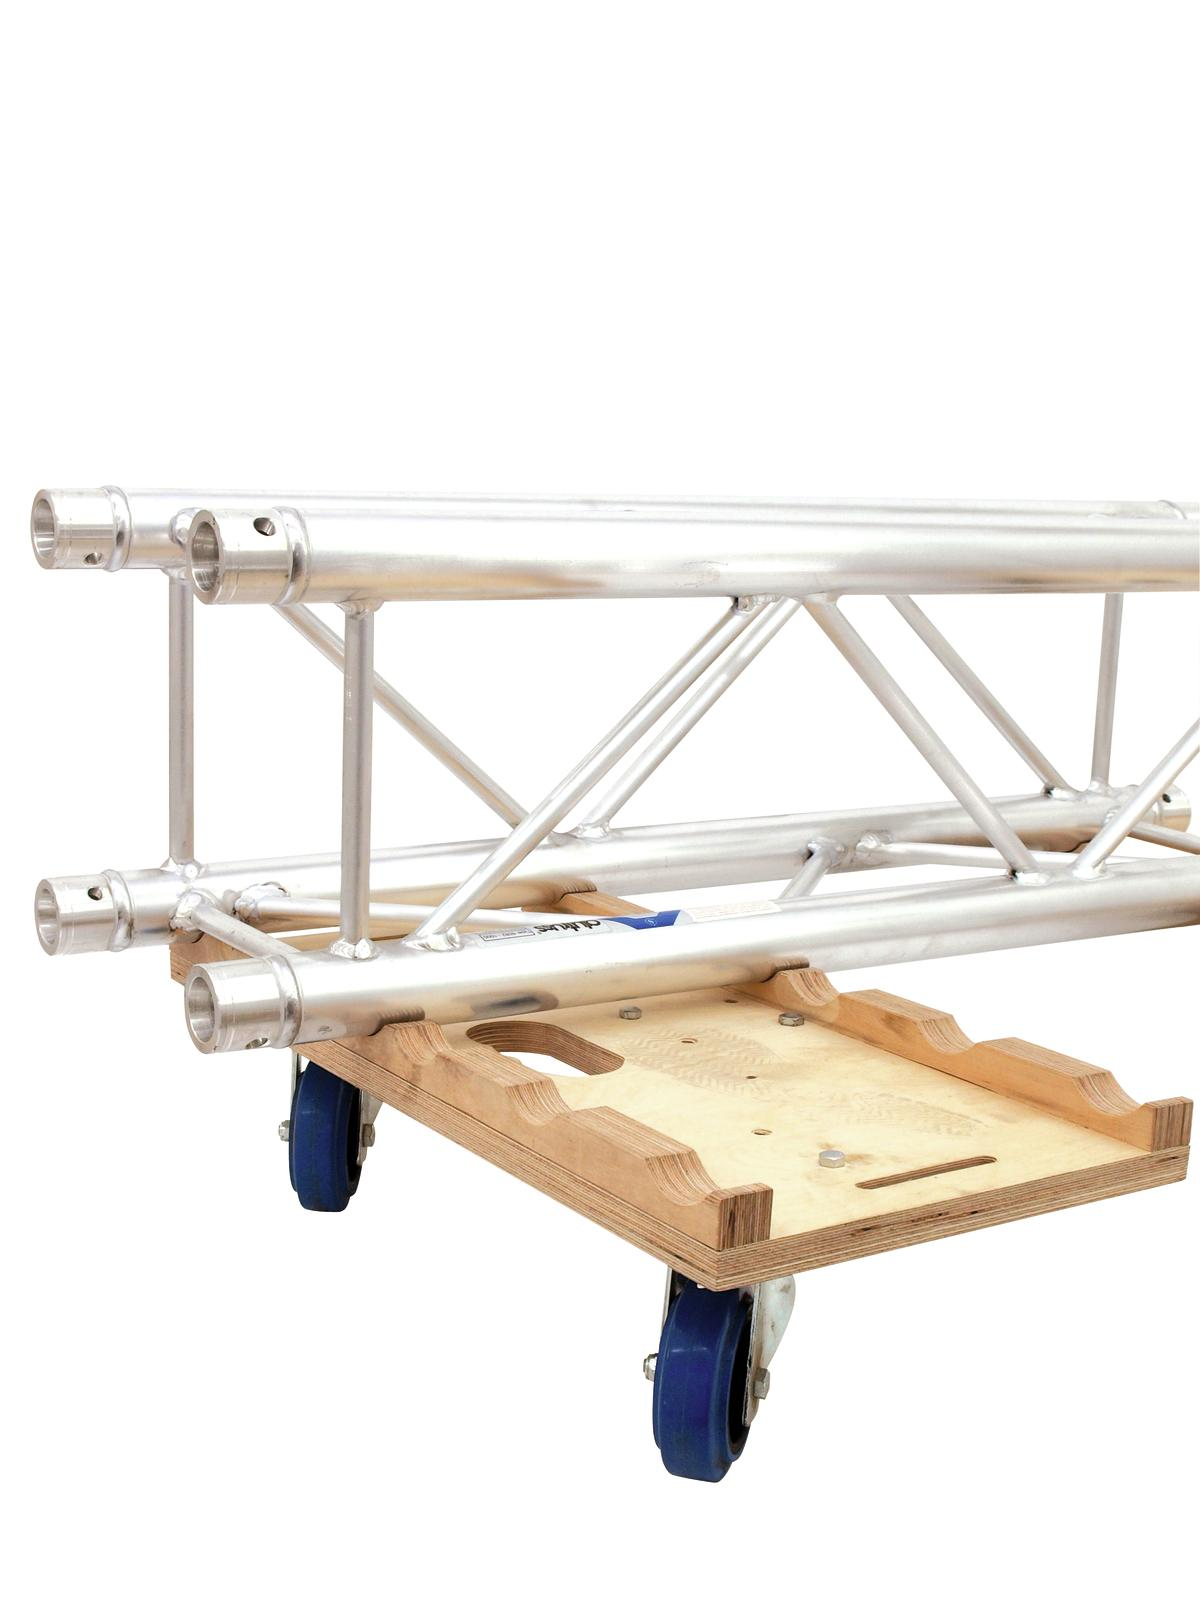 Set Composto da 8 Traverse Truss Americane 3 Vie da 2 MT e 2 Carrelli Alutruss